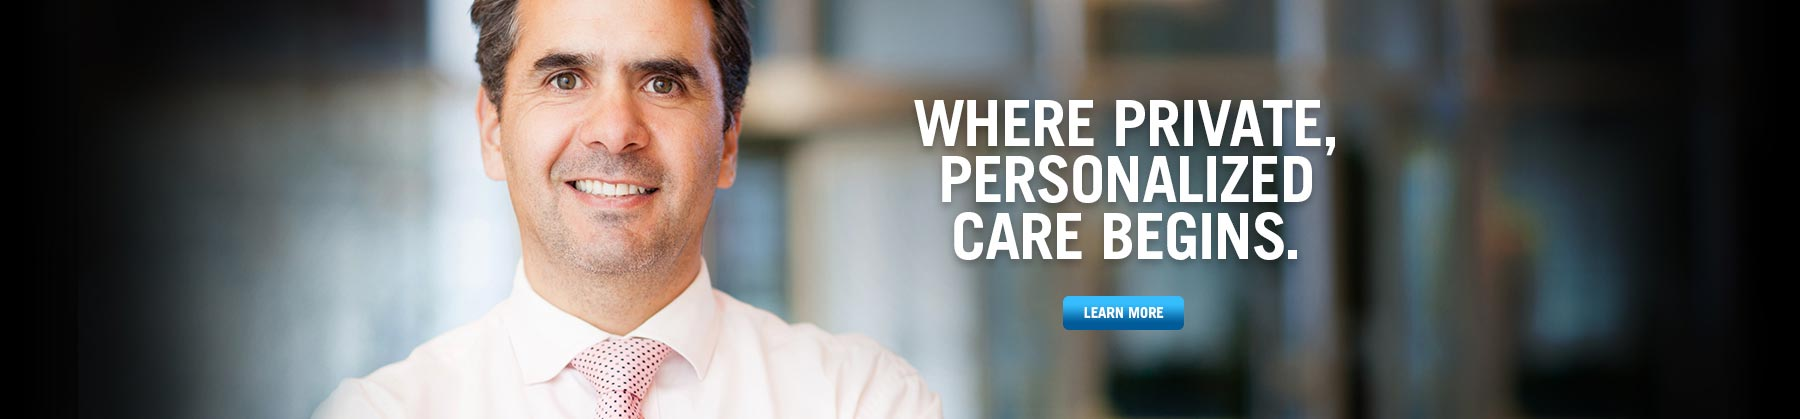 Where Private, Personalized Care Begins.